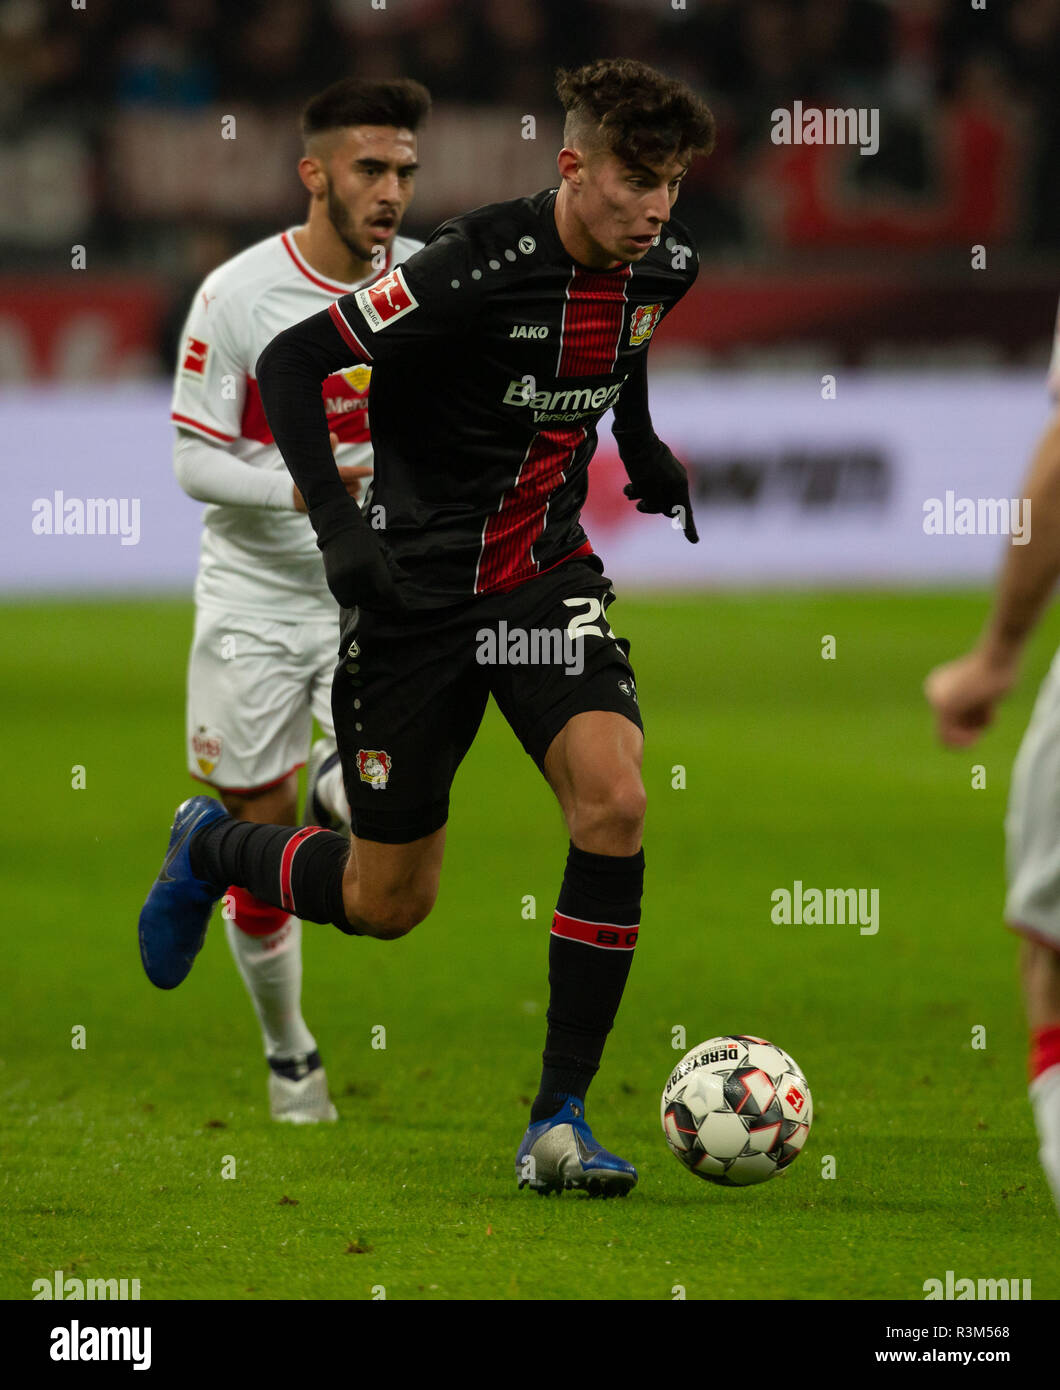 Leverkusen, Germany 23rd November 2018, Bundesliga, Bayer 04 Leverkusen vs VfB Stuttgart:                  Credit: Juergen Schwarz/Alamy Live News - Stock Image